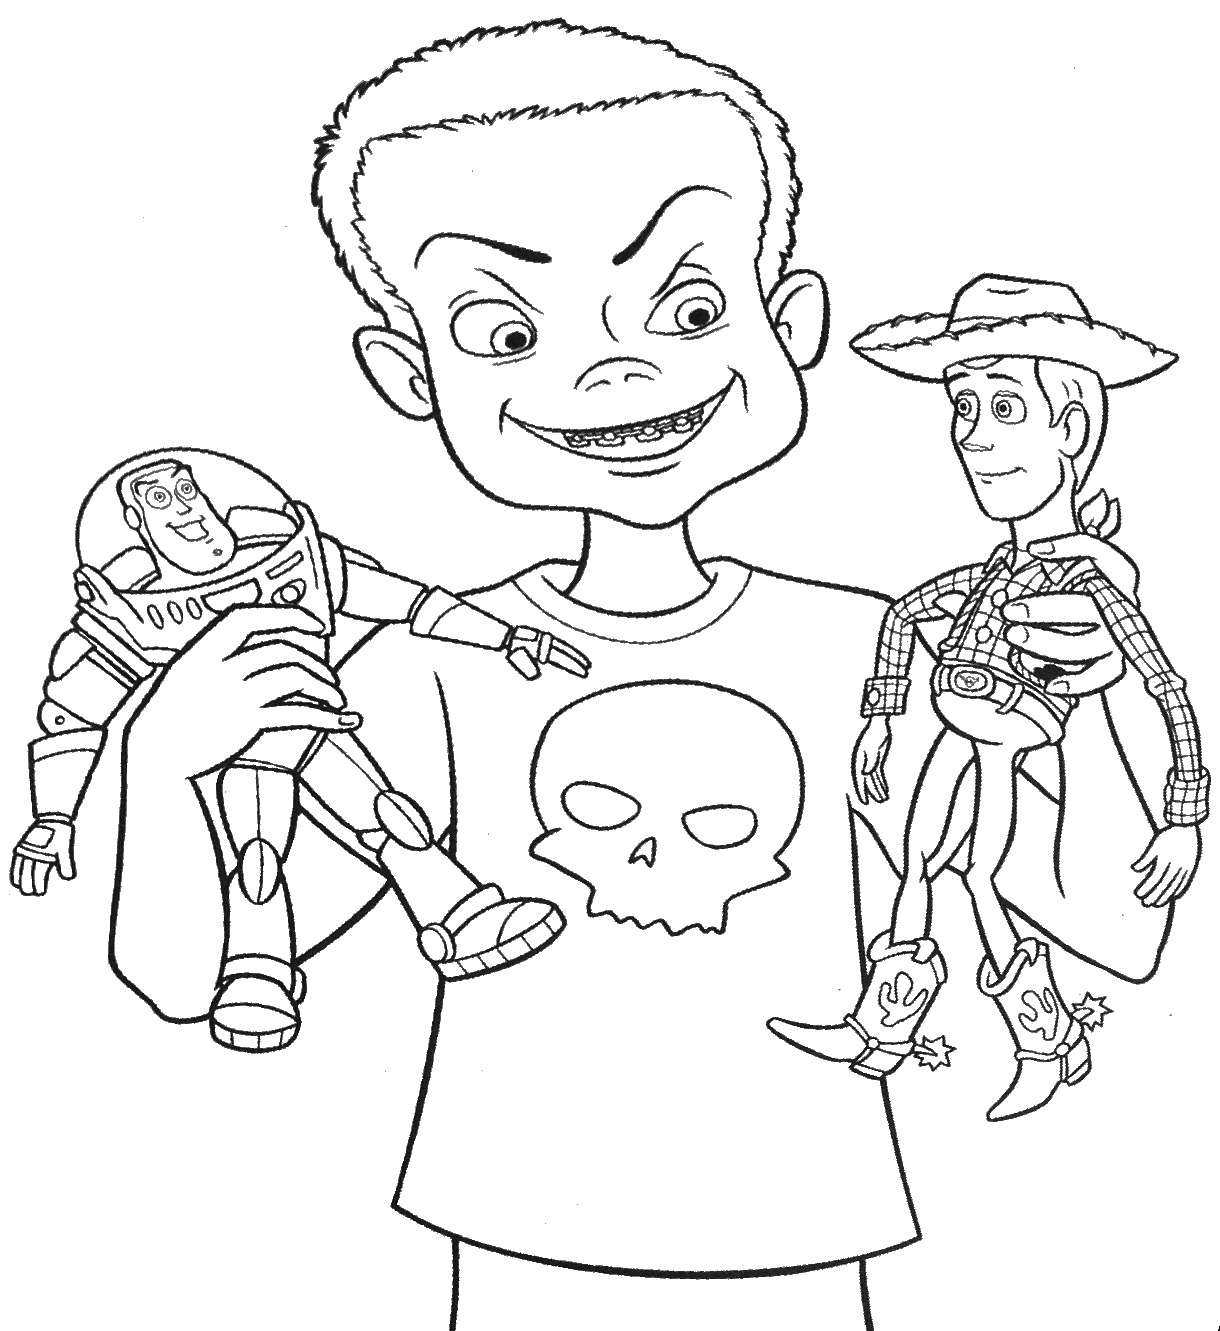 coloring sheet toy story coloring pages coloring pages toy story free printable coloring pages coloring story toy coloring sheet pages